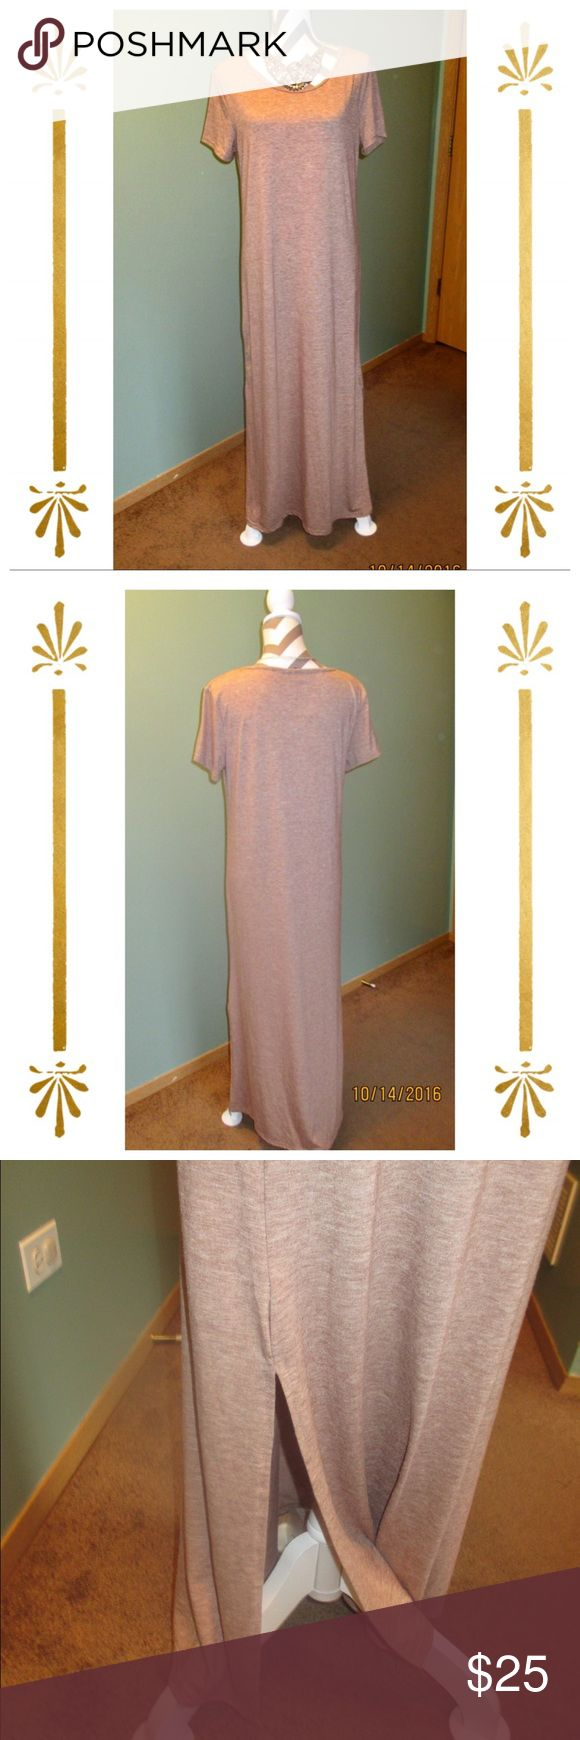 NWOT Brown Maxi Dress ‼️ NWOT ‼️Comfy loose fitting maxi dress. Has a slit on the sides. Great to pair with scarves or statement pieces. 5th & Love Dresses Maxi